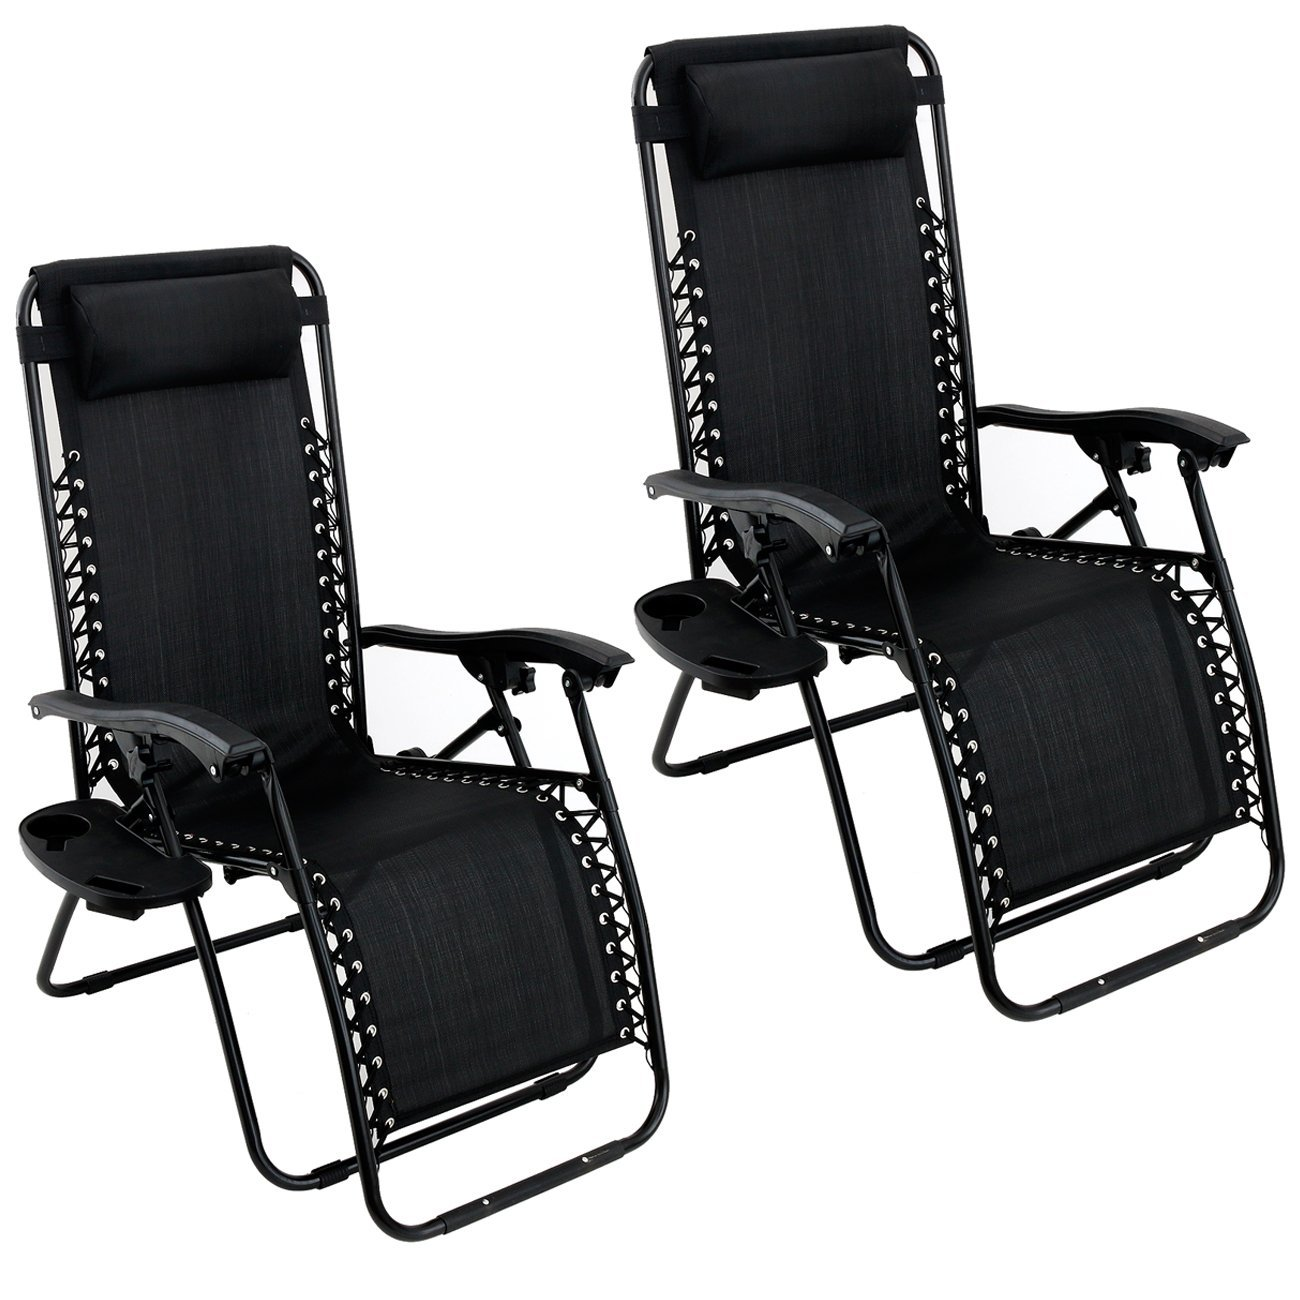 Top 10 Best Reclining Patio Chairs 2017 Review